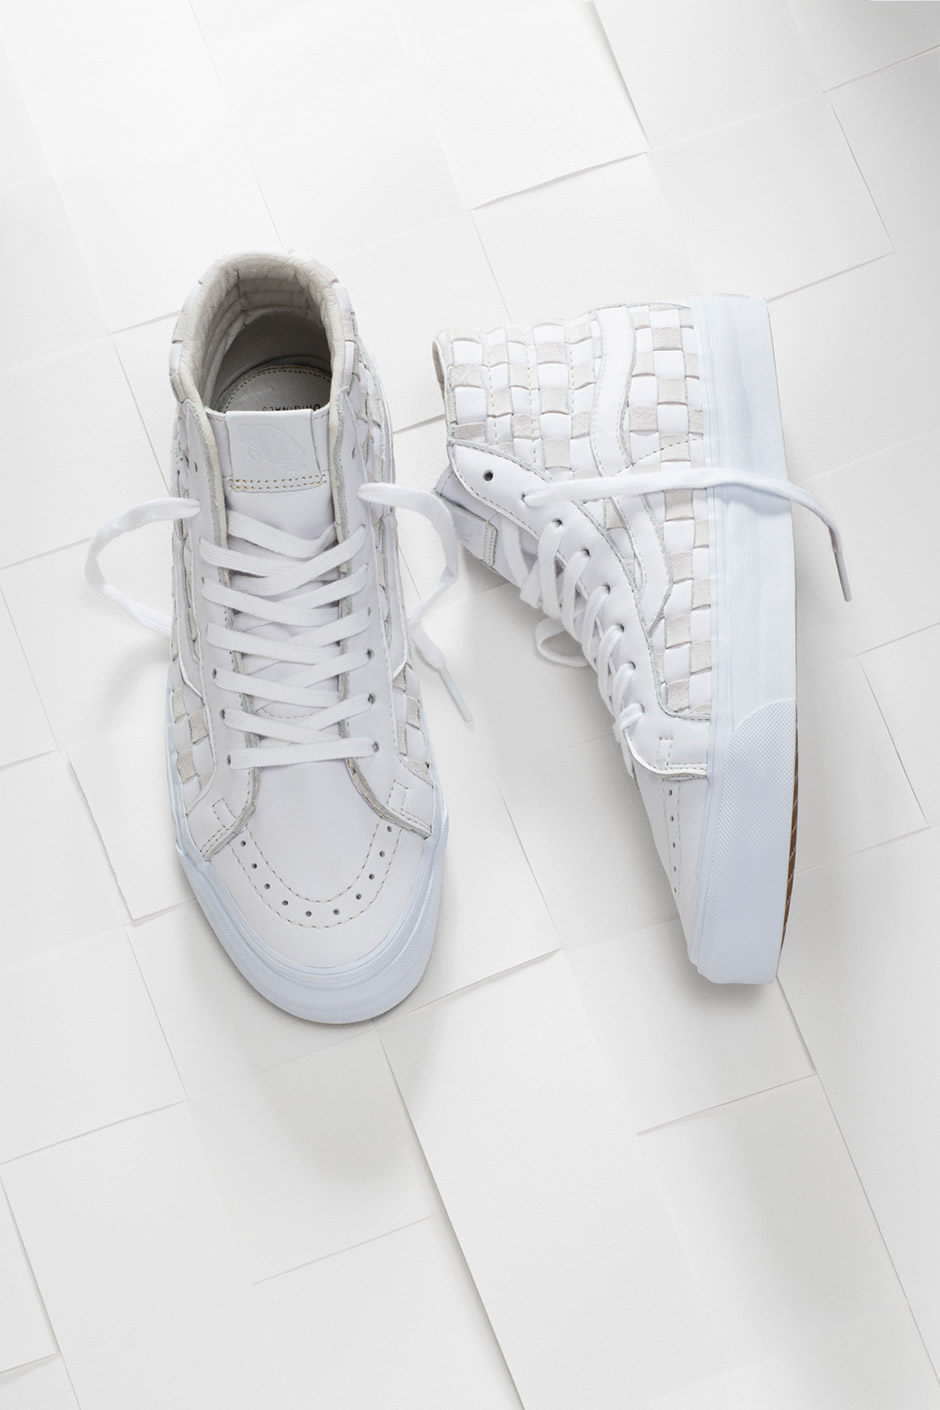 Vault By Vans Woven Leather Checkered Past Collection - Nitrolicious.com